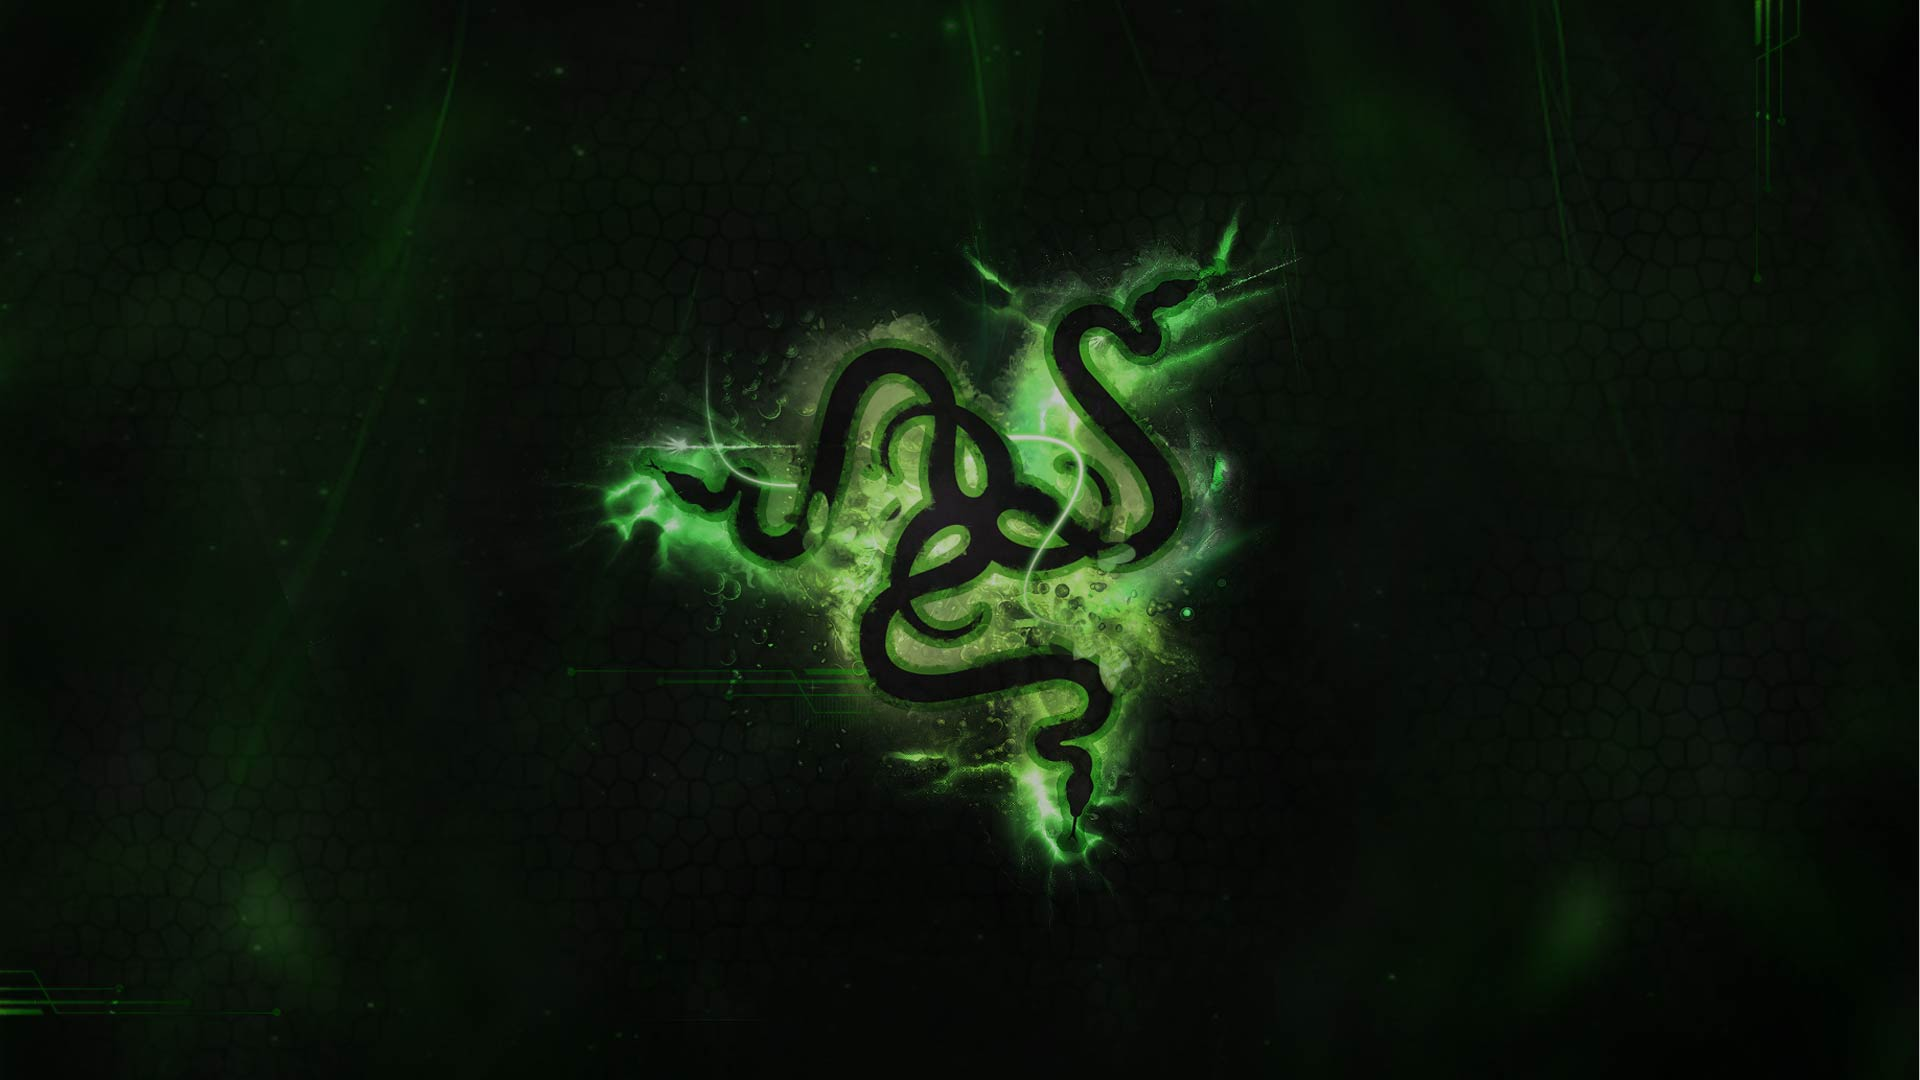 Download Dzd Razer Revamp Green Dzdigital Deviantart Wallpapers